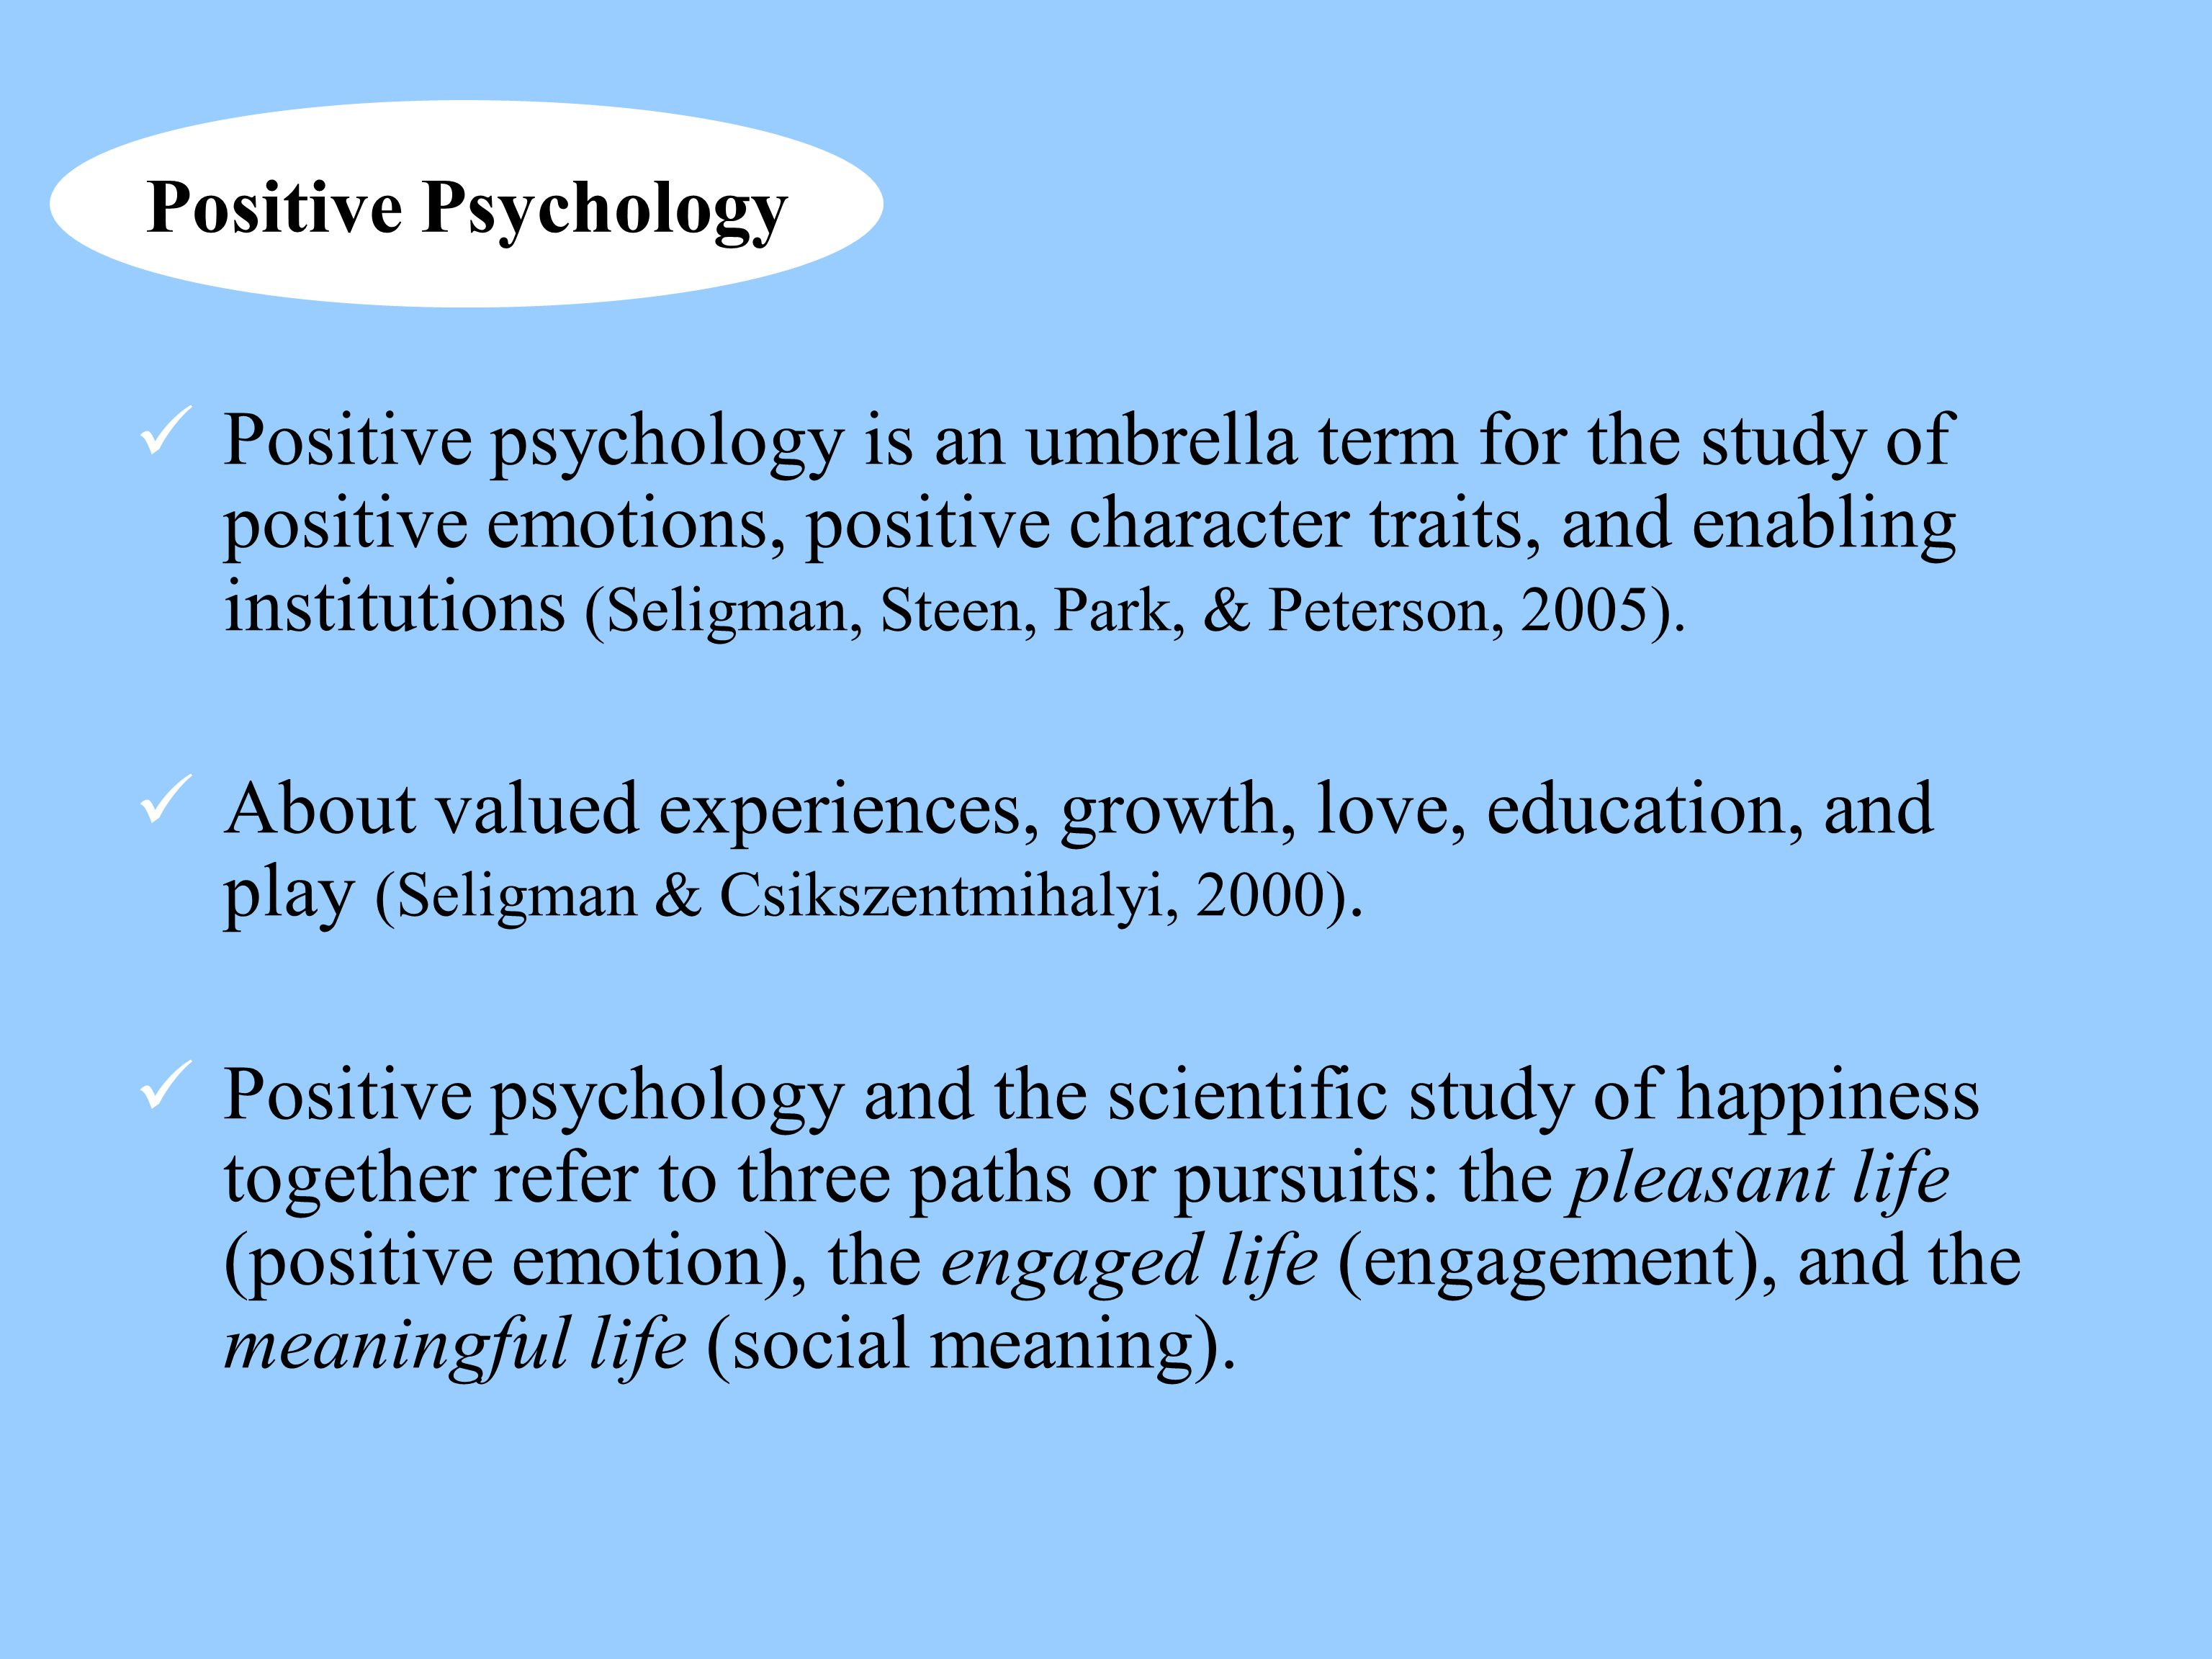 Positive Psychology Positive psychology is an umbrella term for the study of positive emotions, positive character traits, and enabling institutions (